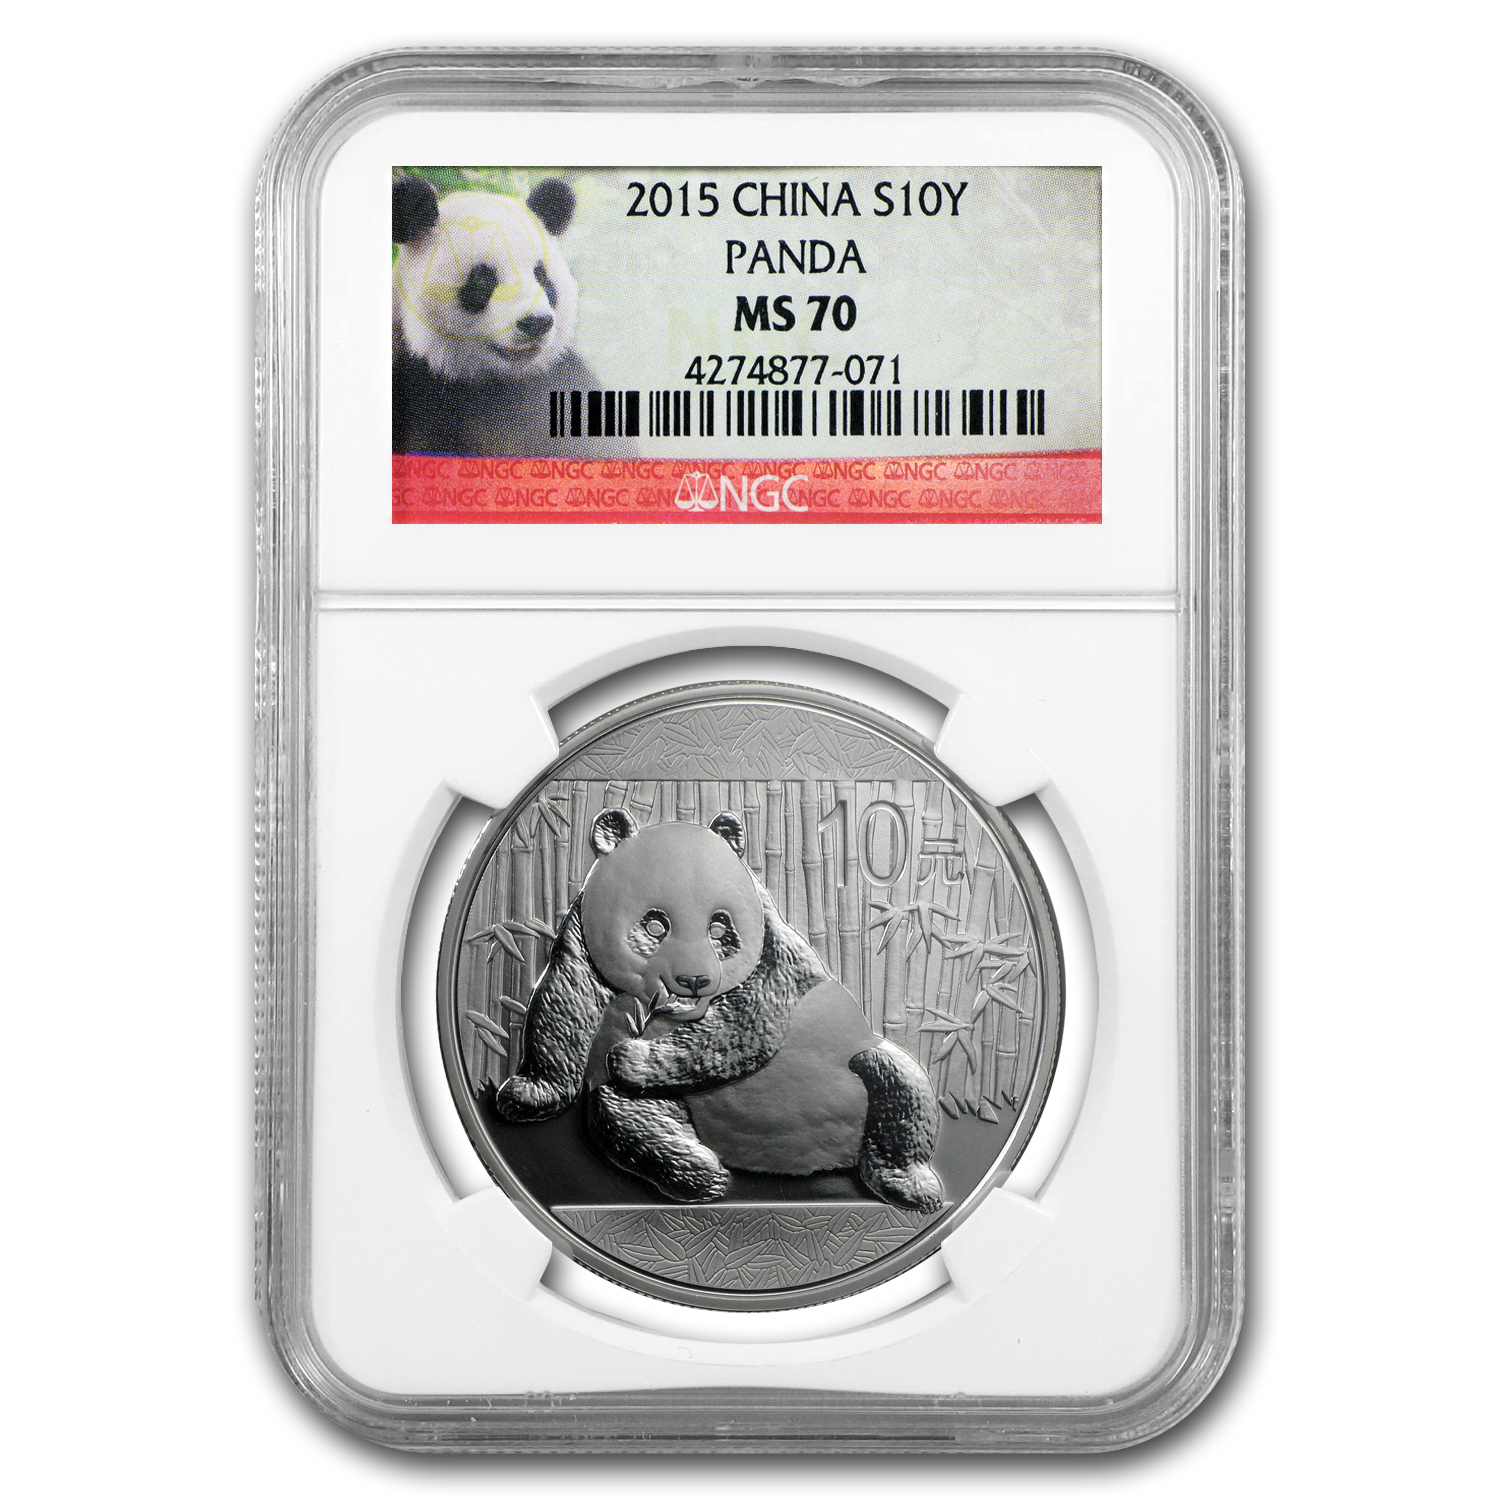 2015 China 1 oz Silver Panda MS-70 NGC